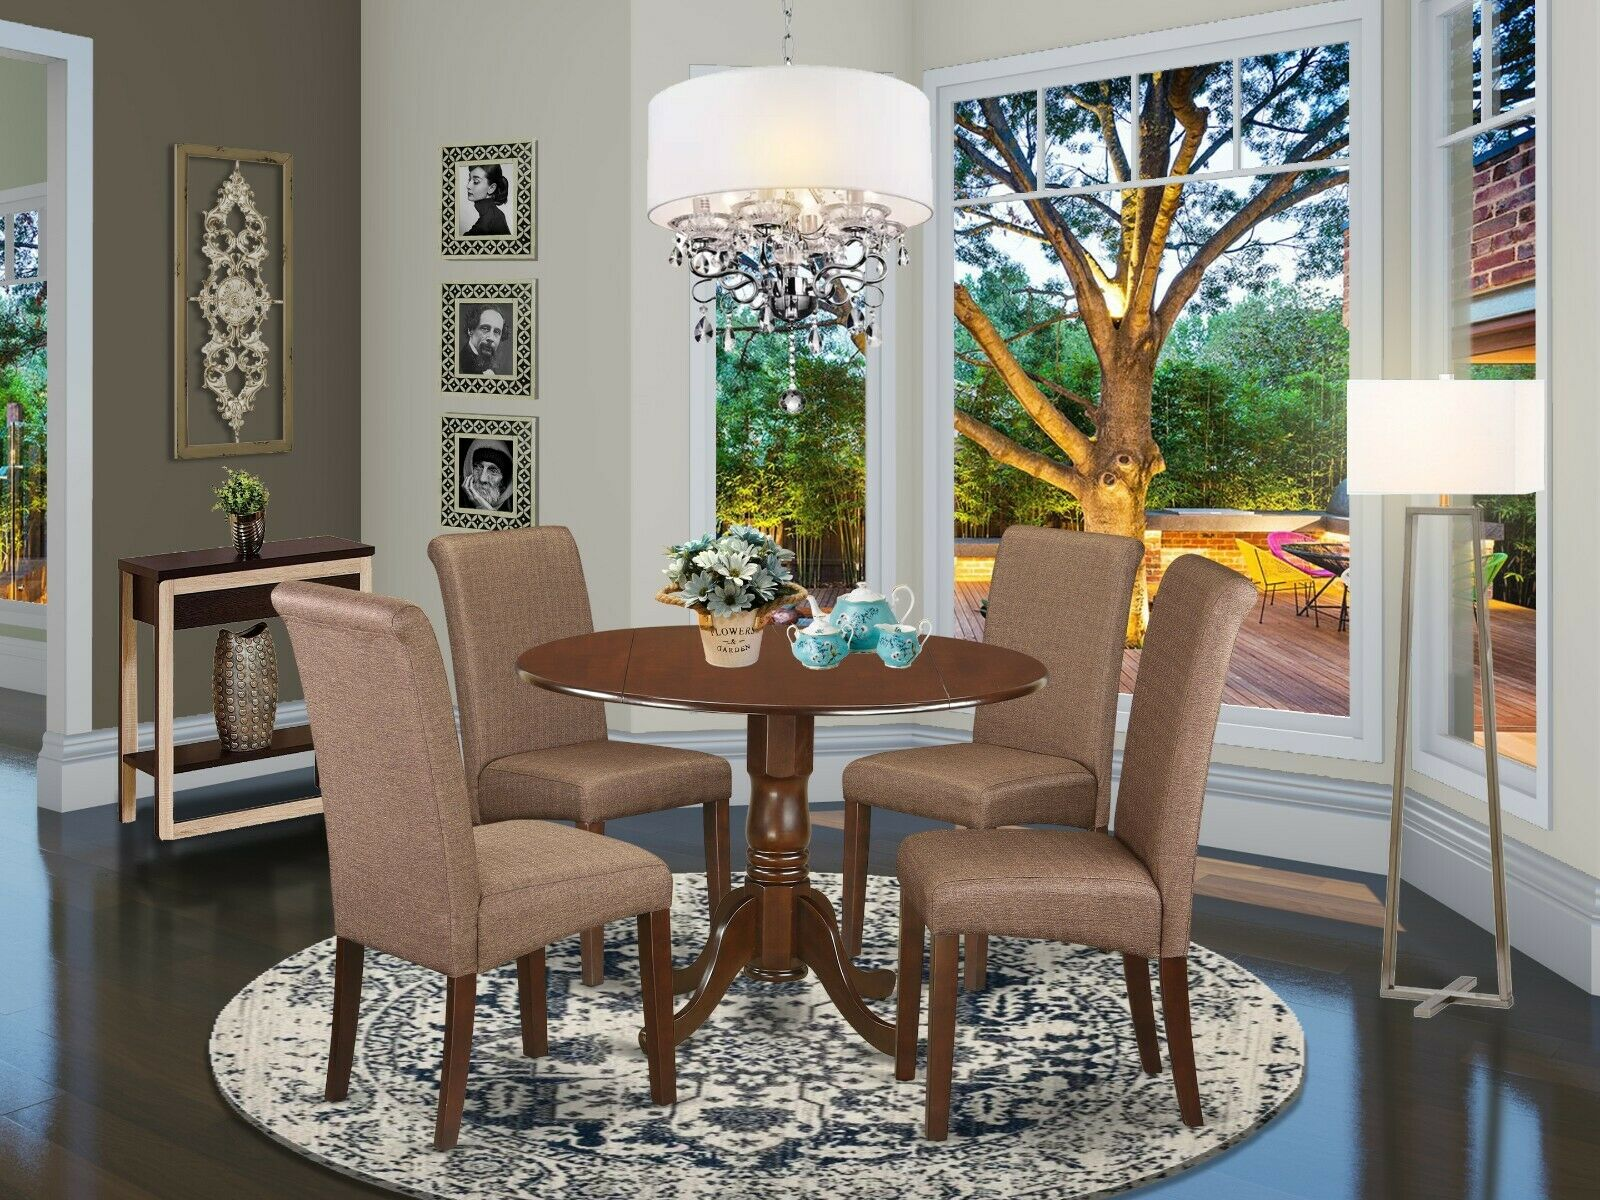 Eden 5pc Round Pedestal Cherry Finish Wood Kitchen Dining Room Table Set Chairs For Sale Online Ebay